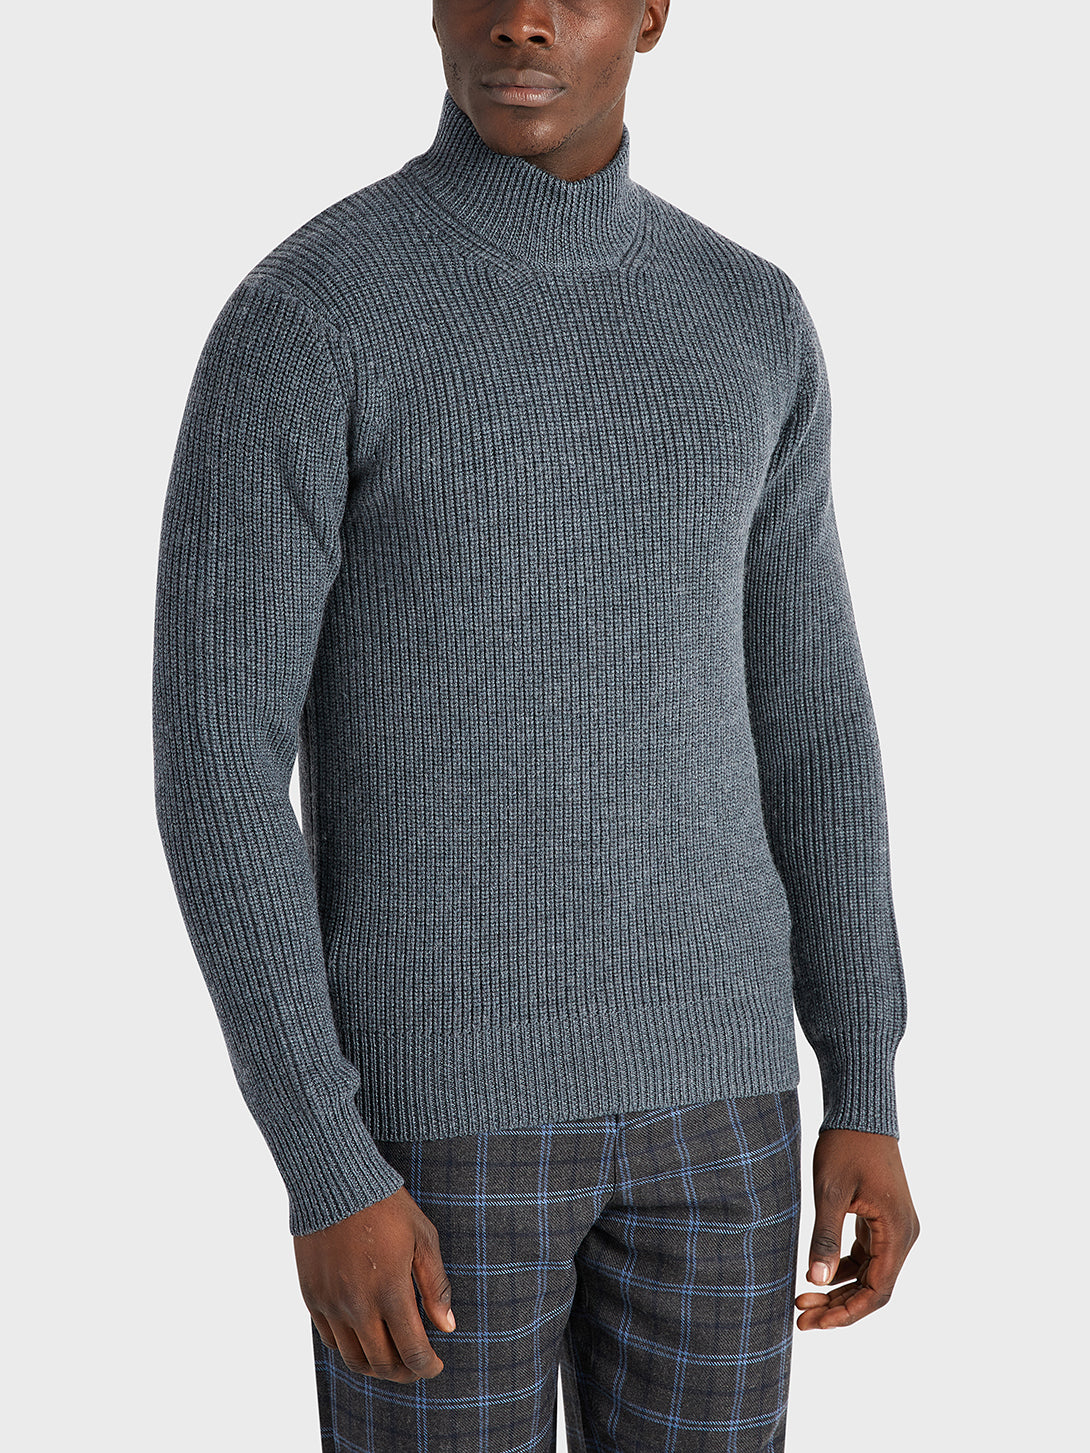 black friday deals ONS Clothing Men's Acton Mock Neck Sweater in CHARCOAL H